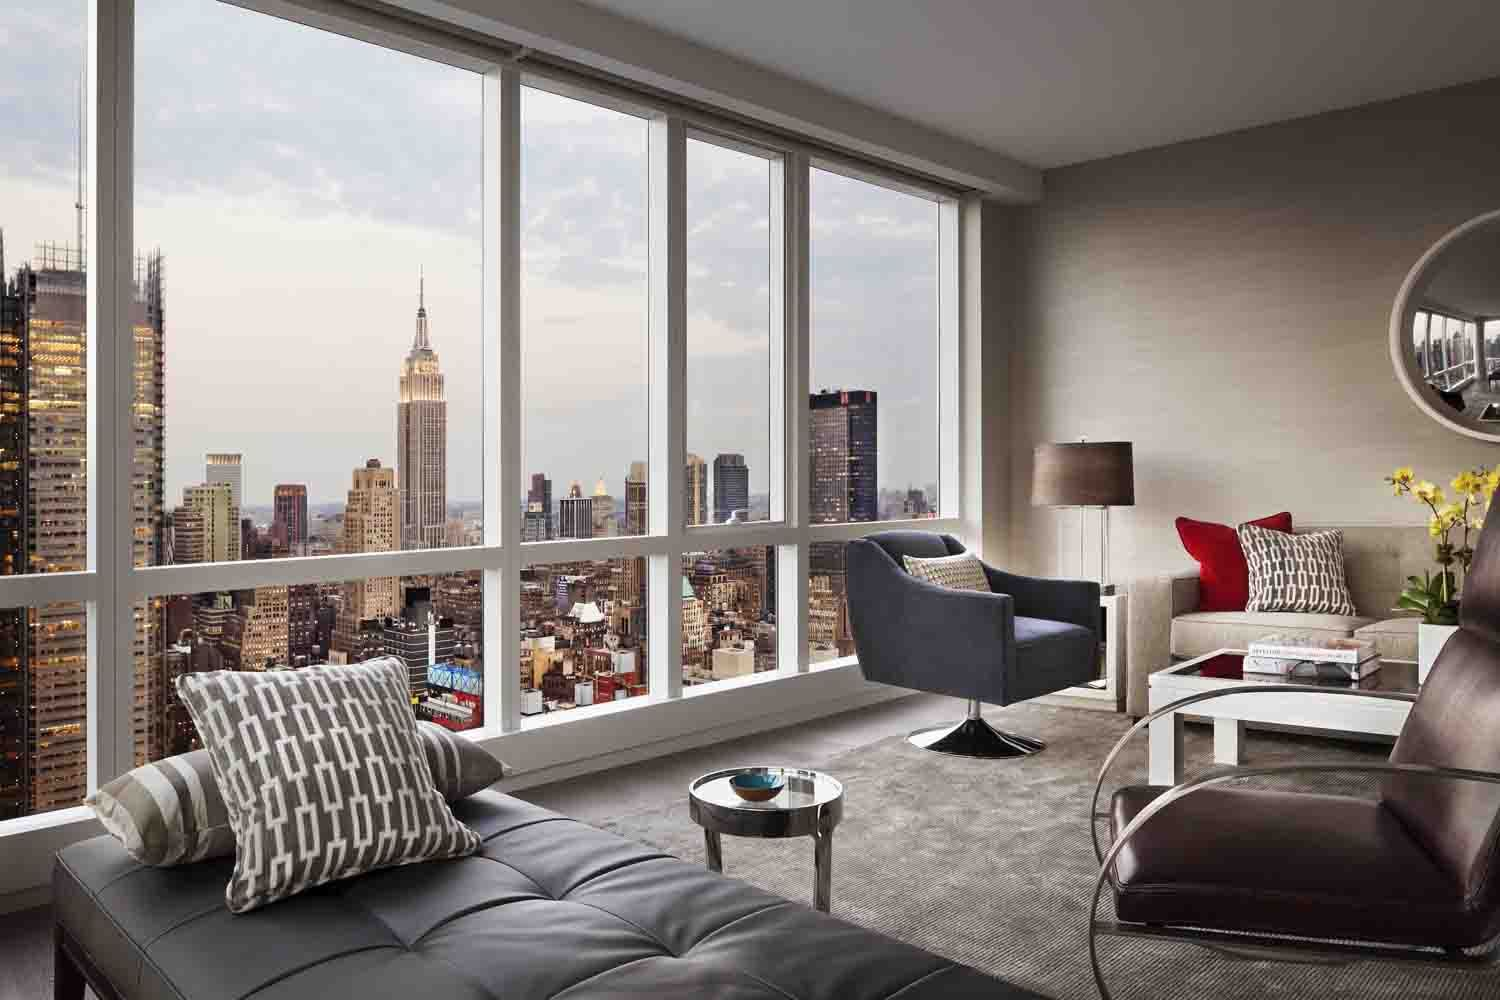 Nice Apartment Building Interior awesome modern apartments in nyc images - home design ideas